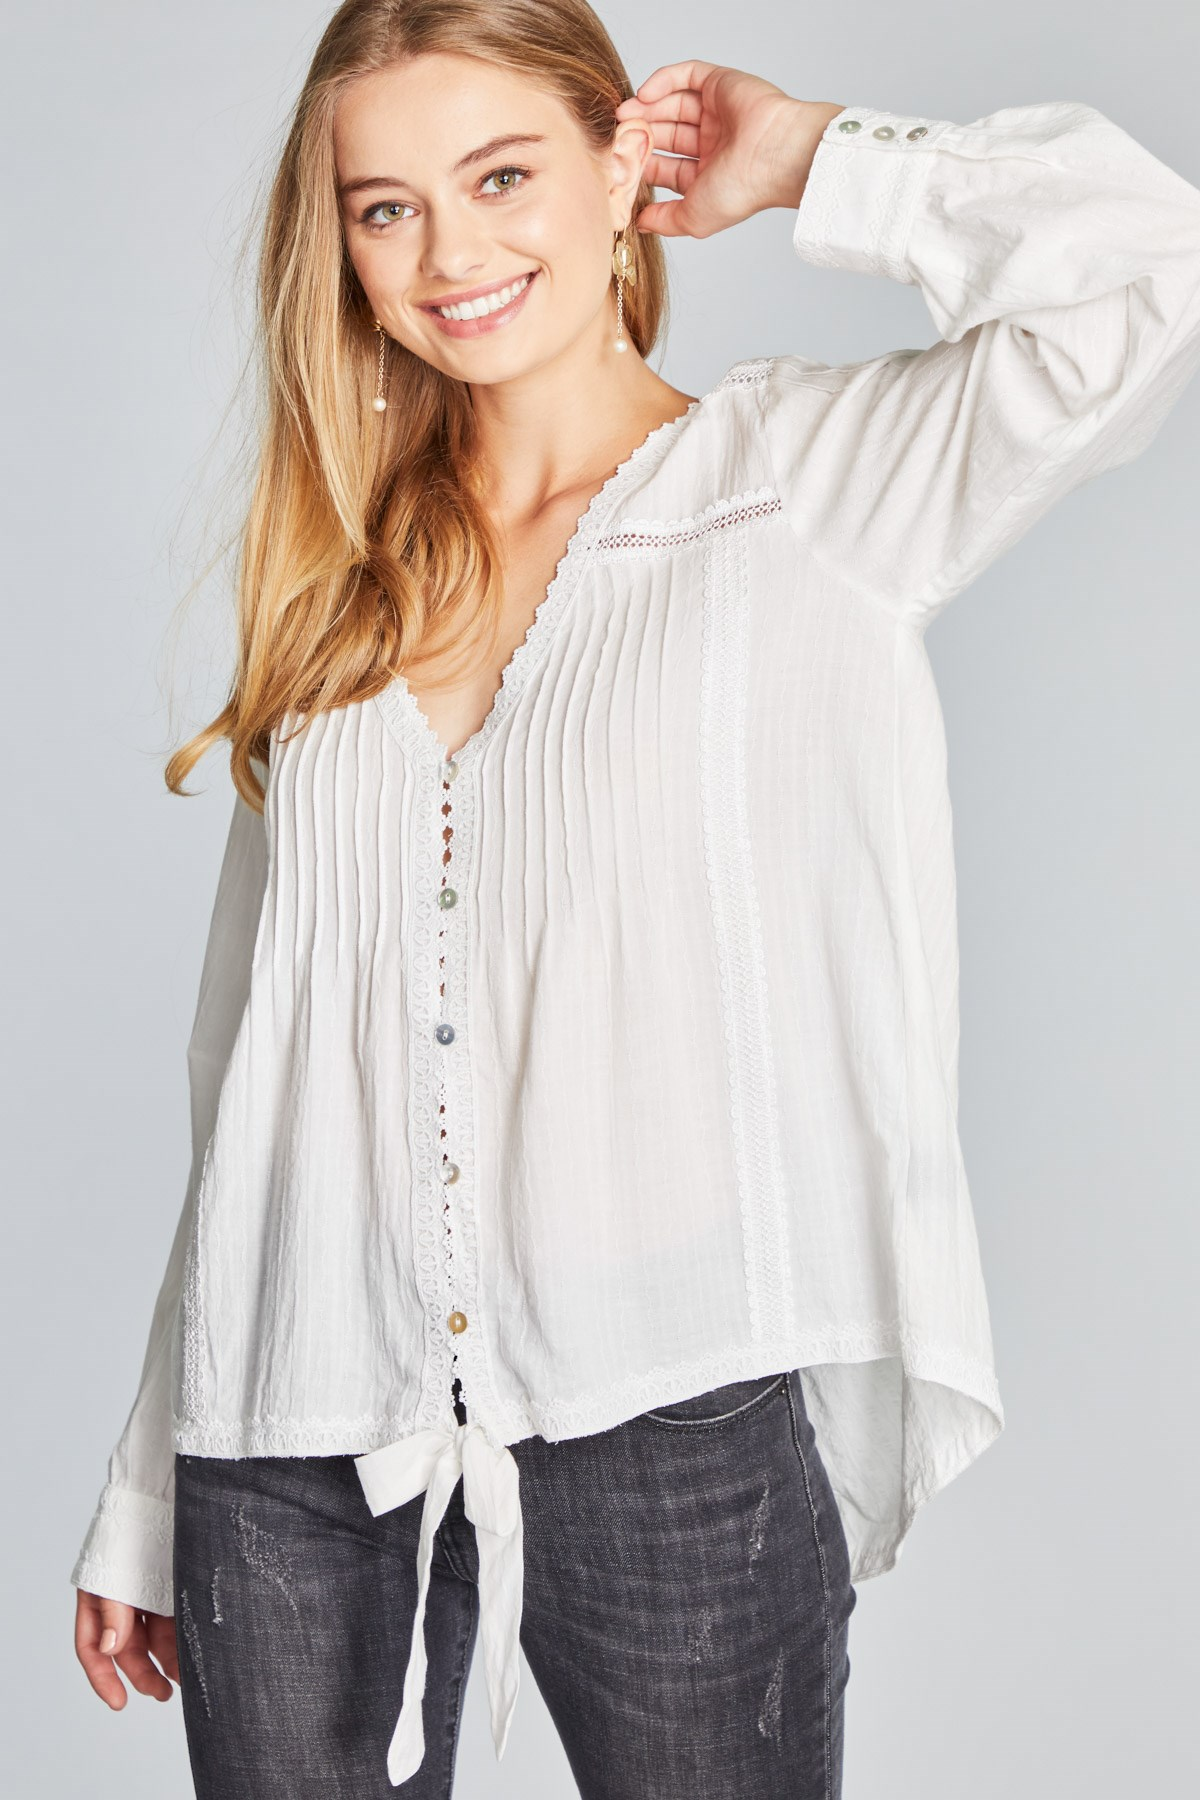 Southern Comfort White Cotton Top